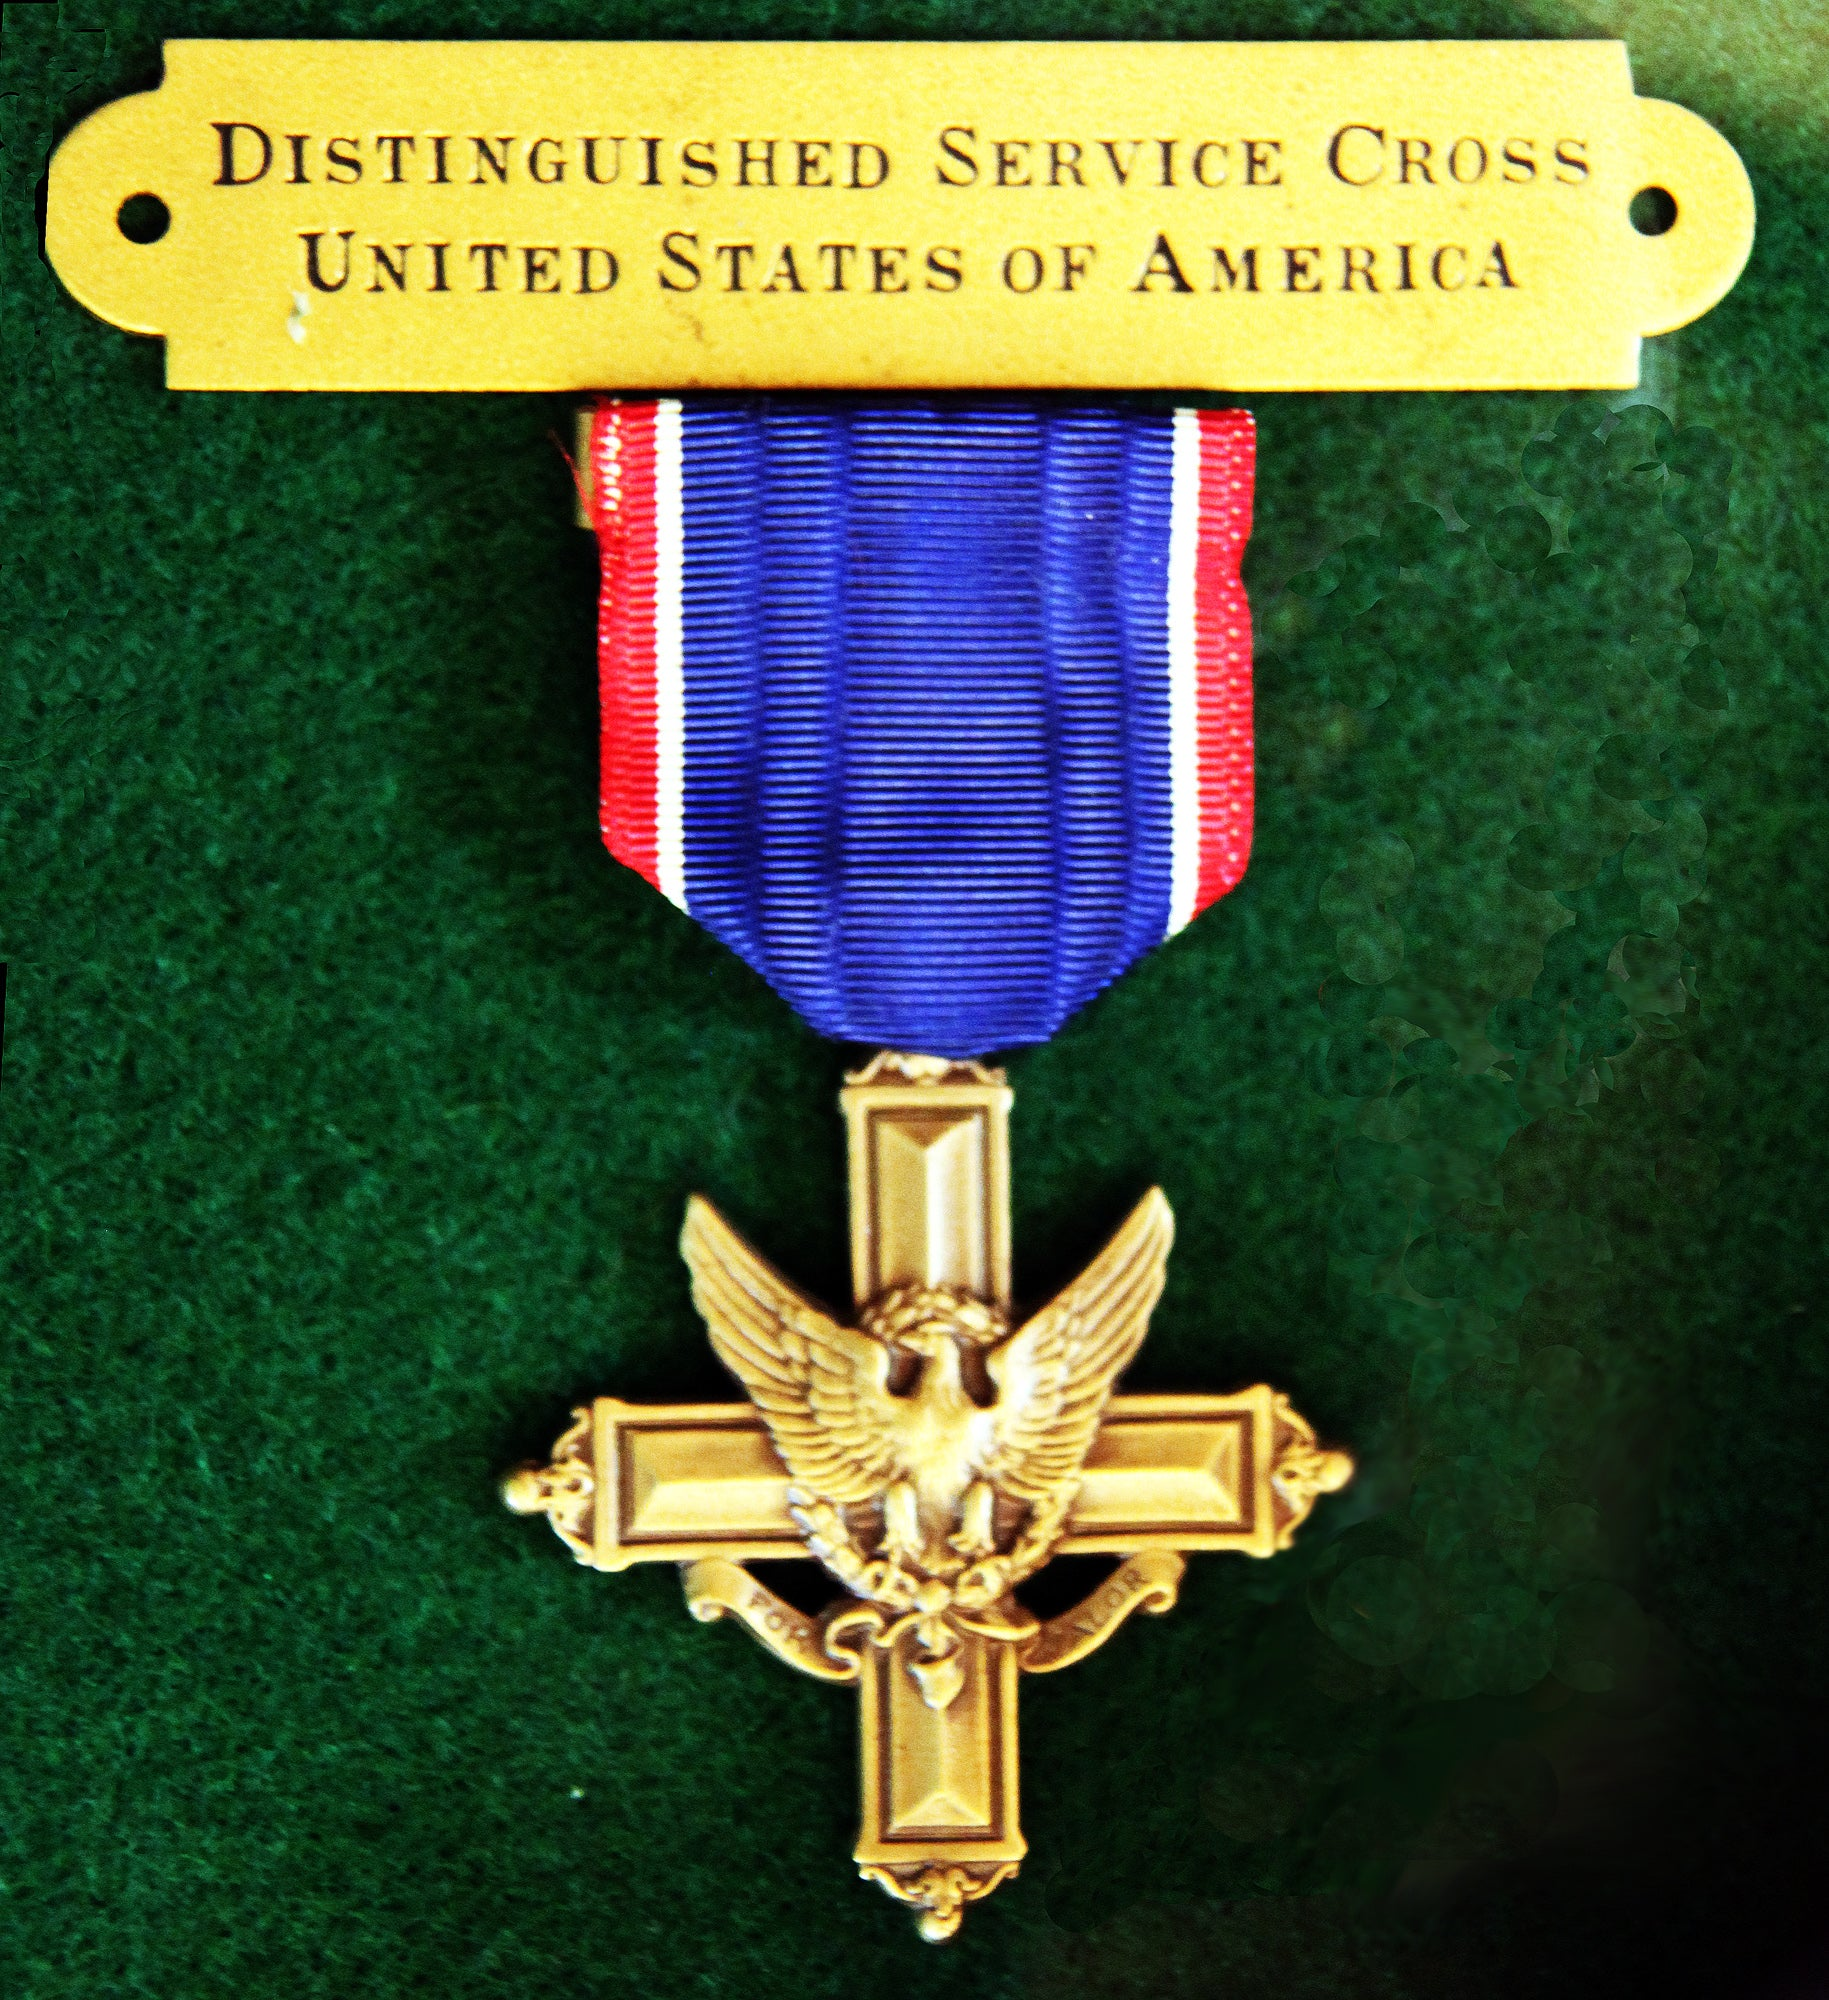 Chin received the distinguished service cross towards the end of his life